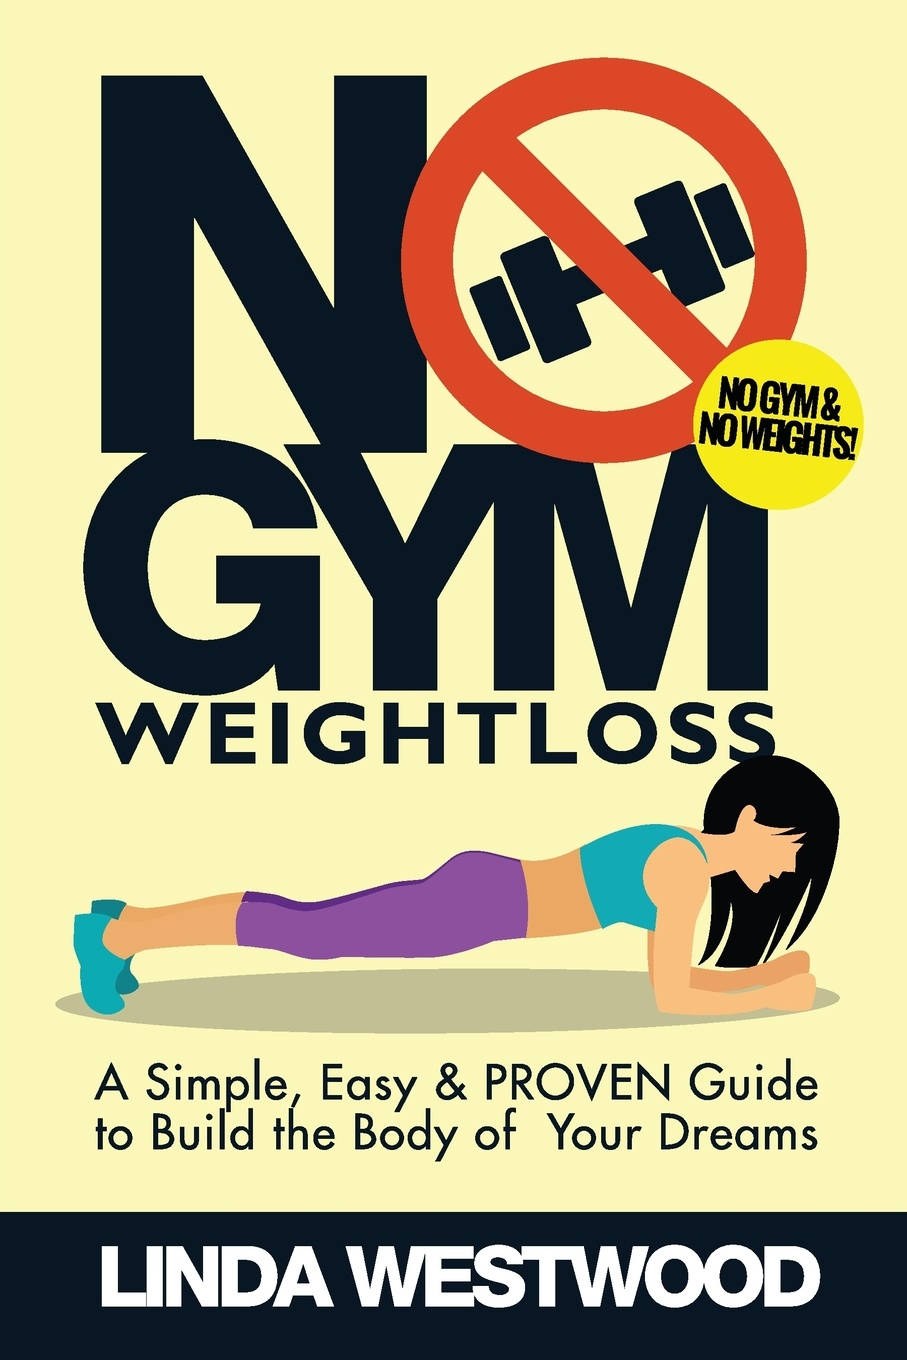 Linda Westwood No Gym Weight Loss. A Simple, Easy & PROVEN Guide to Build The Body of Your Dreams With NO GYM WEIGHTS!